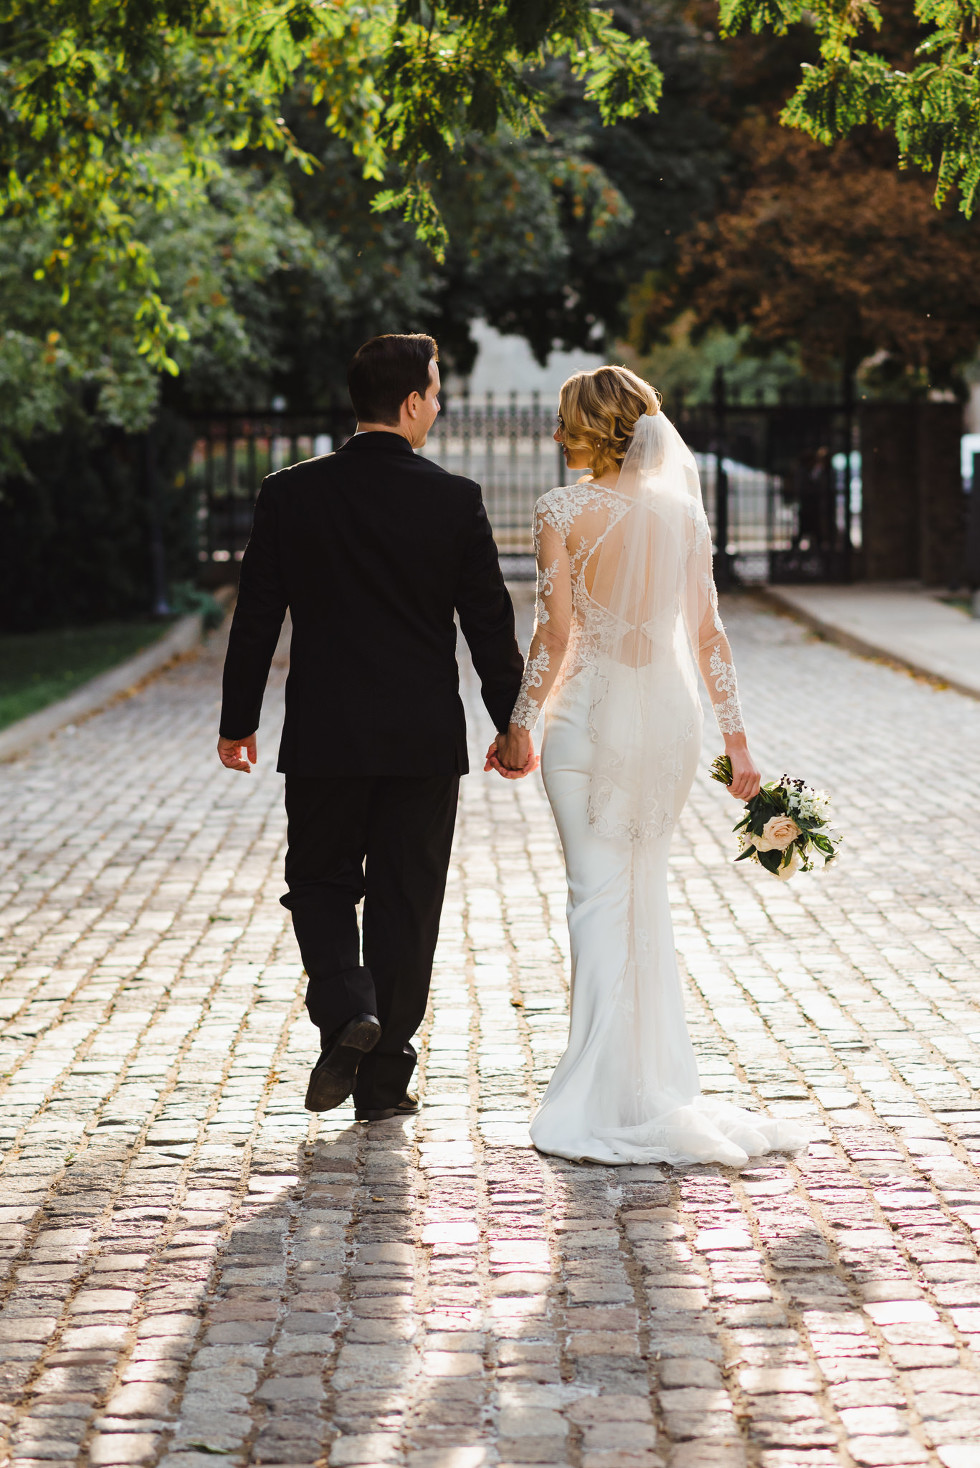 bride and groom stroll hand in hand along a brick pathway in an iconic downtown Toronto wedding